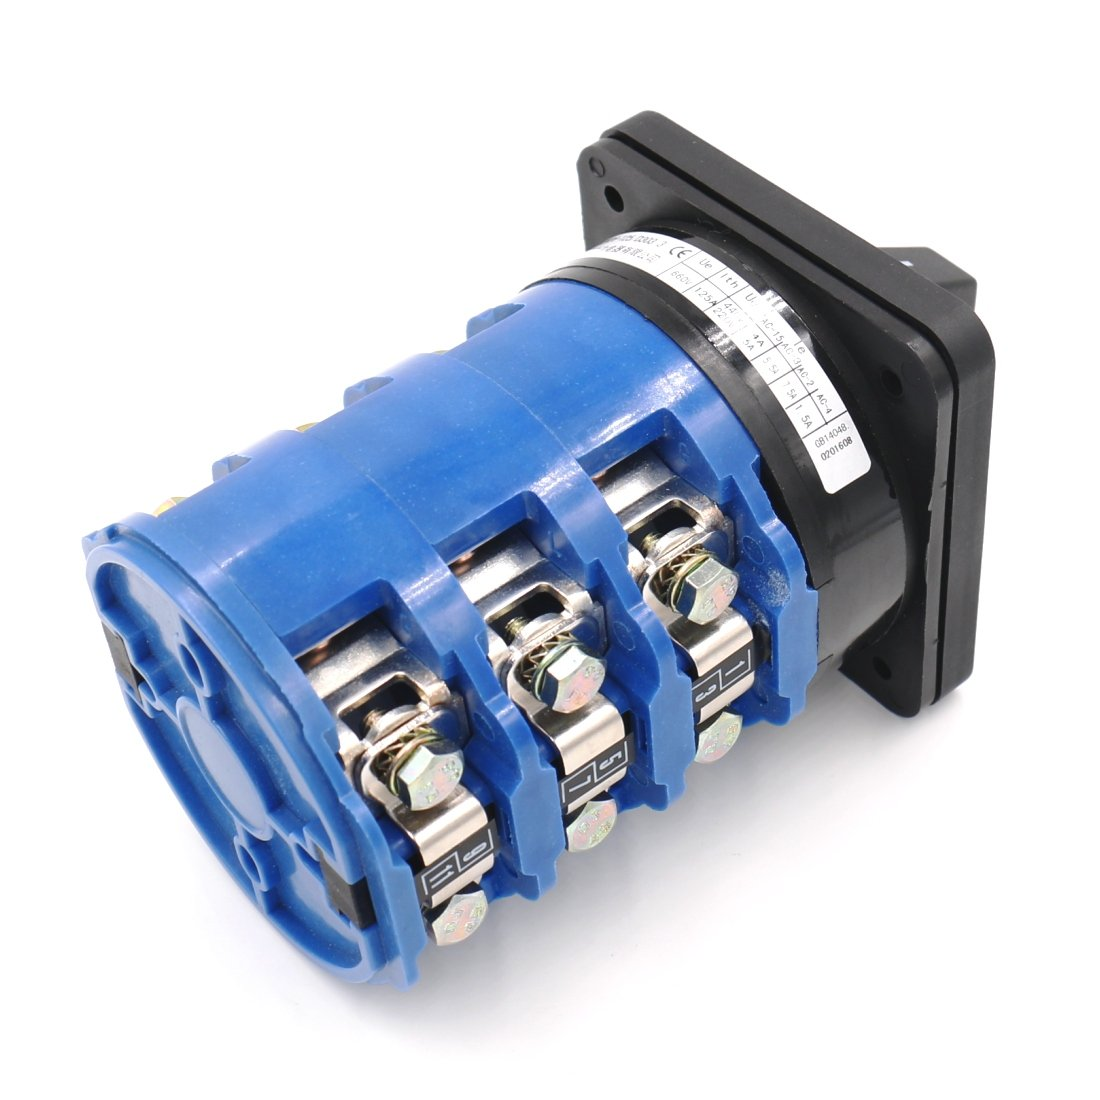 Baomain Universal Cam Changeover Rotary Switch LW28-125/3 660V 125A 3 Position by Baomain (Image #2)